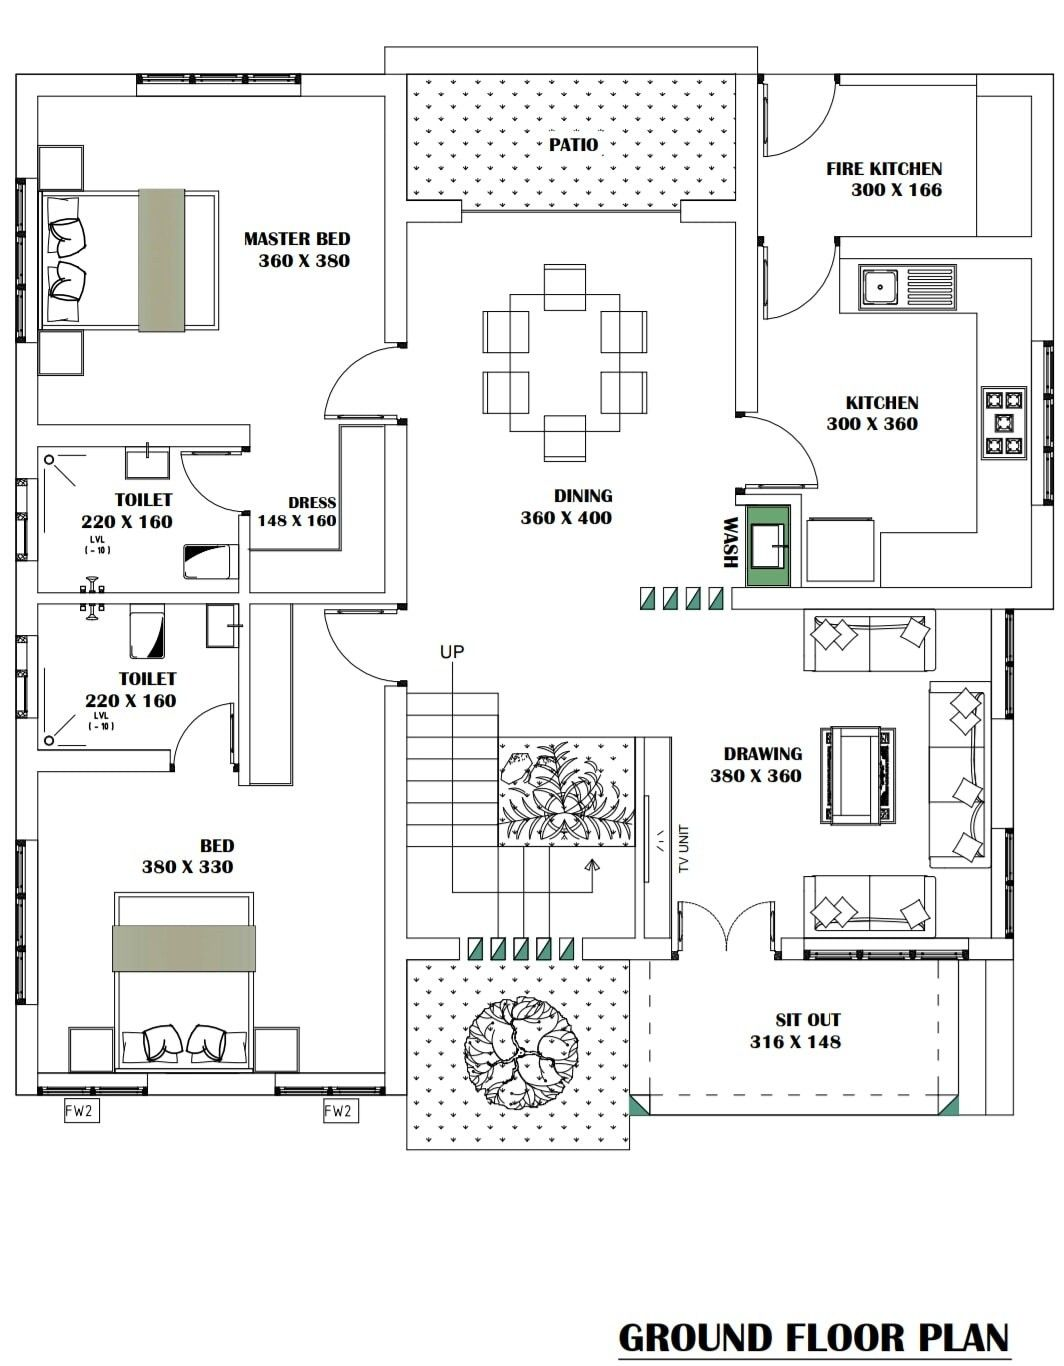 Pin By Jamal On House Ideas Budget House Plans Single Storey House Plans Indian House Plans